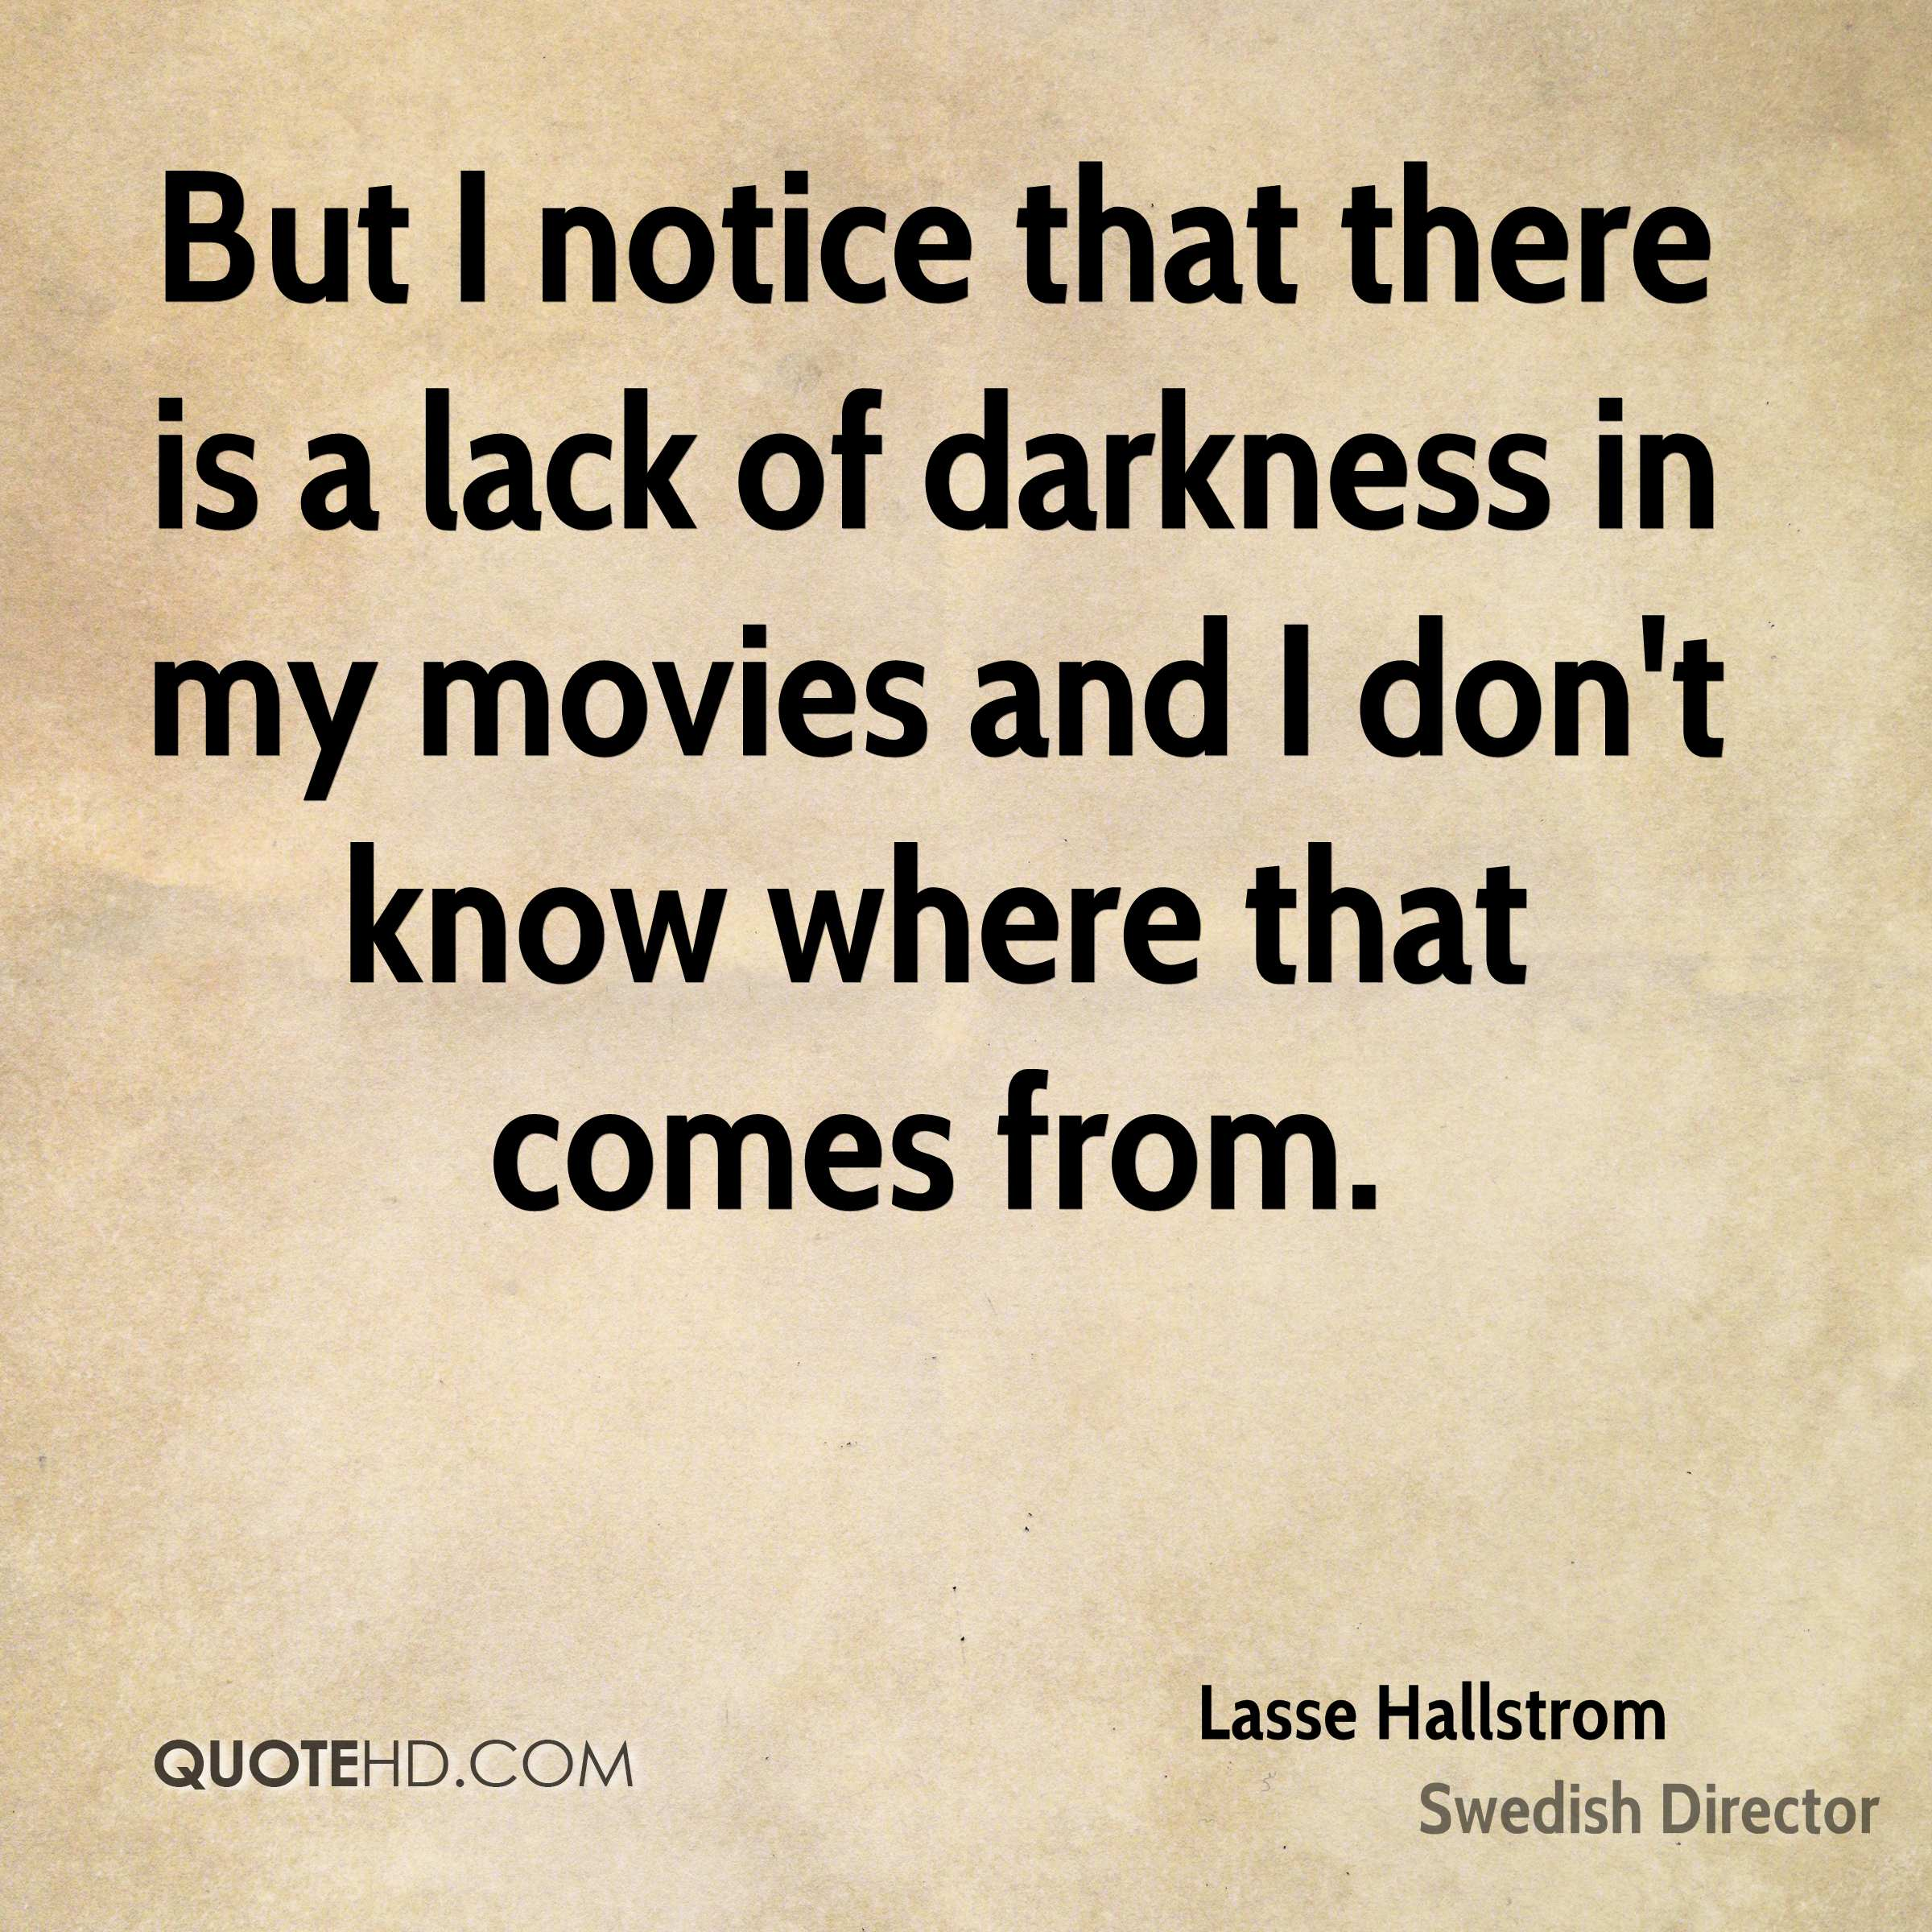 But I notice that there is a lack of darkness in my movies and I don't know where that comes from.